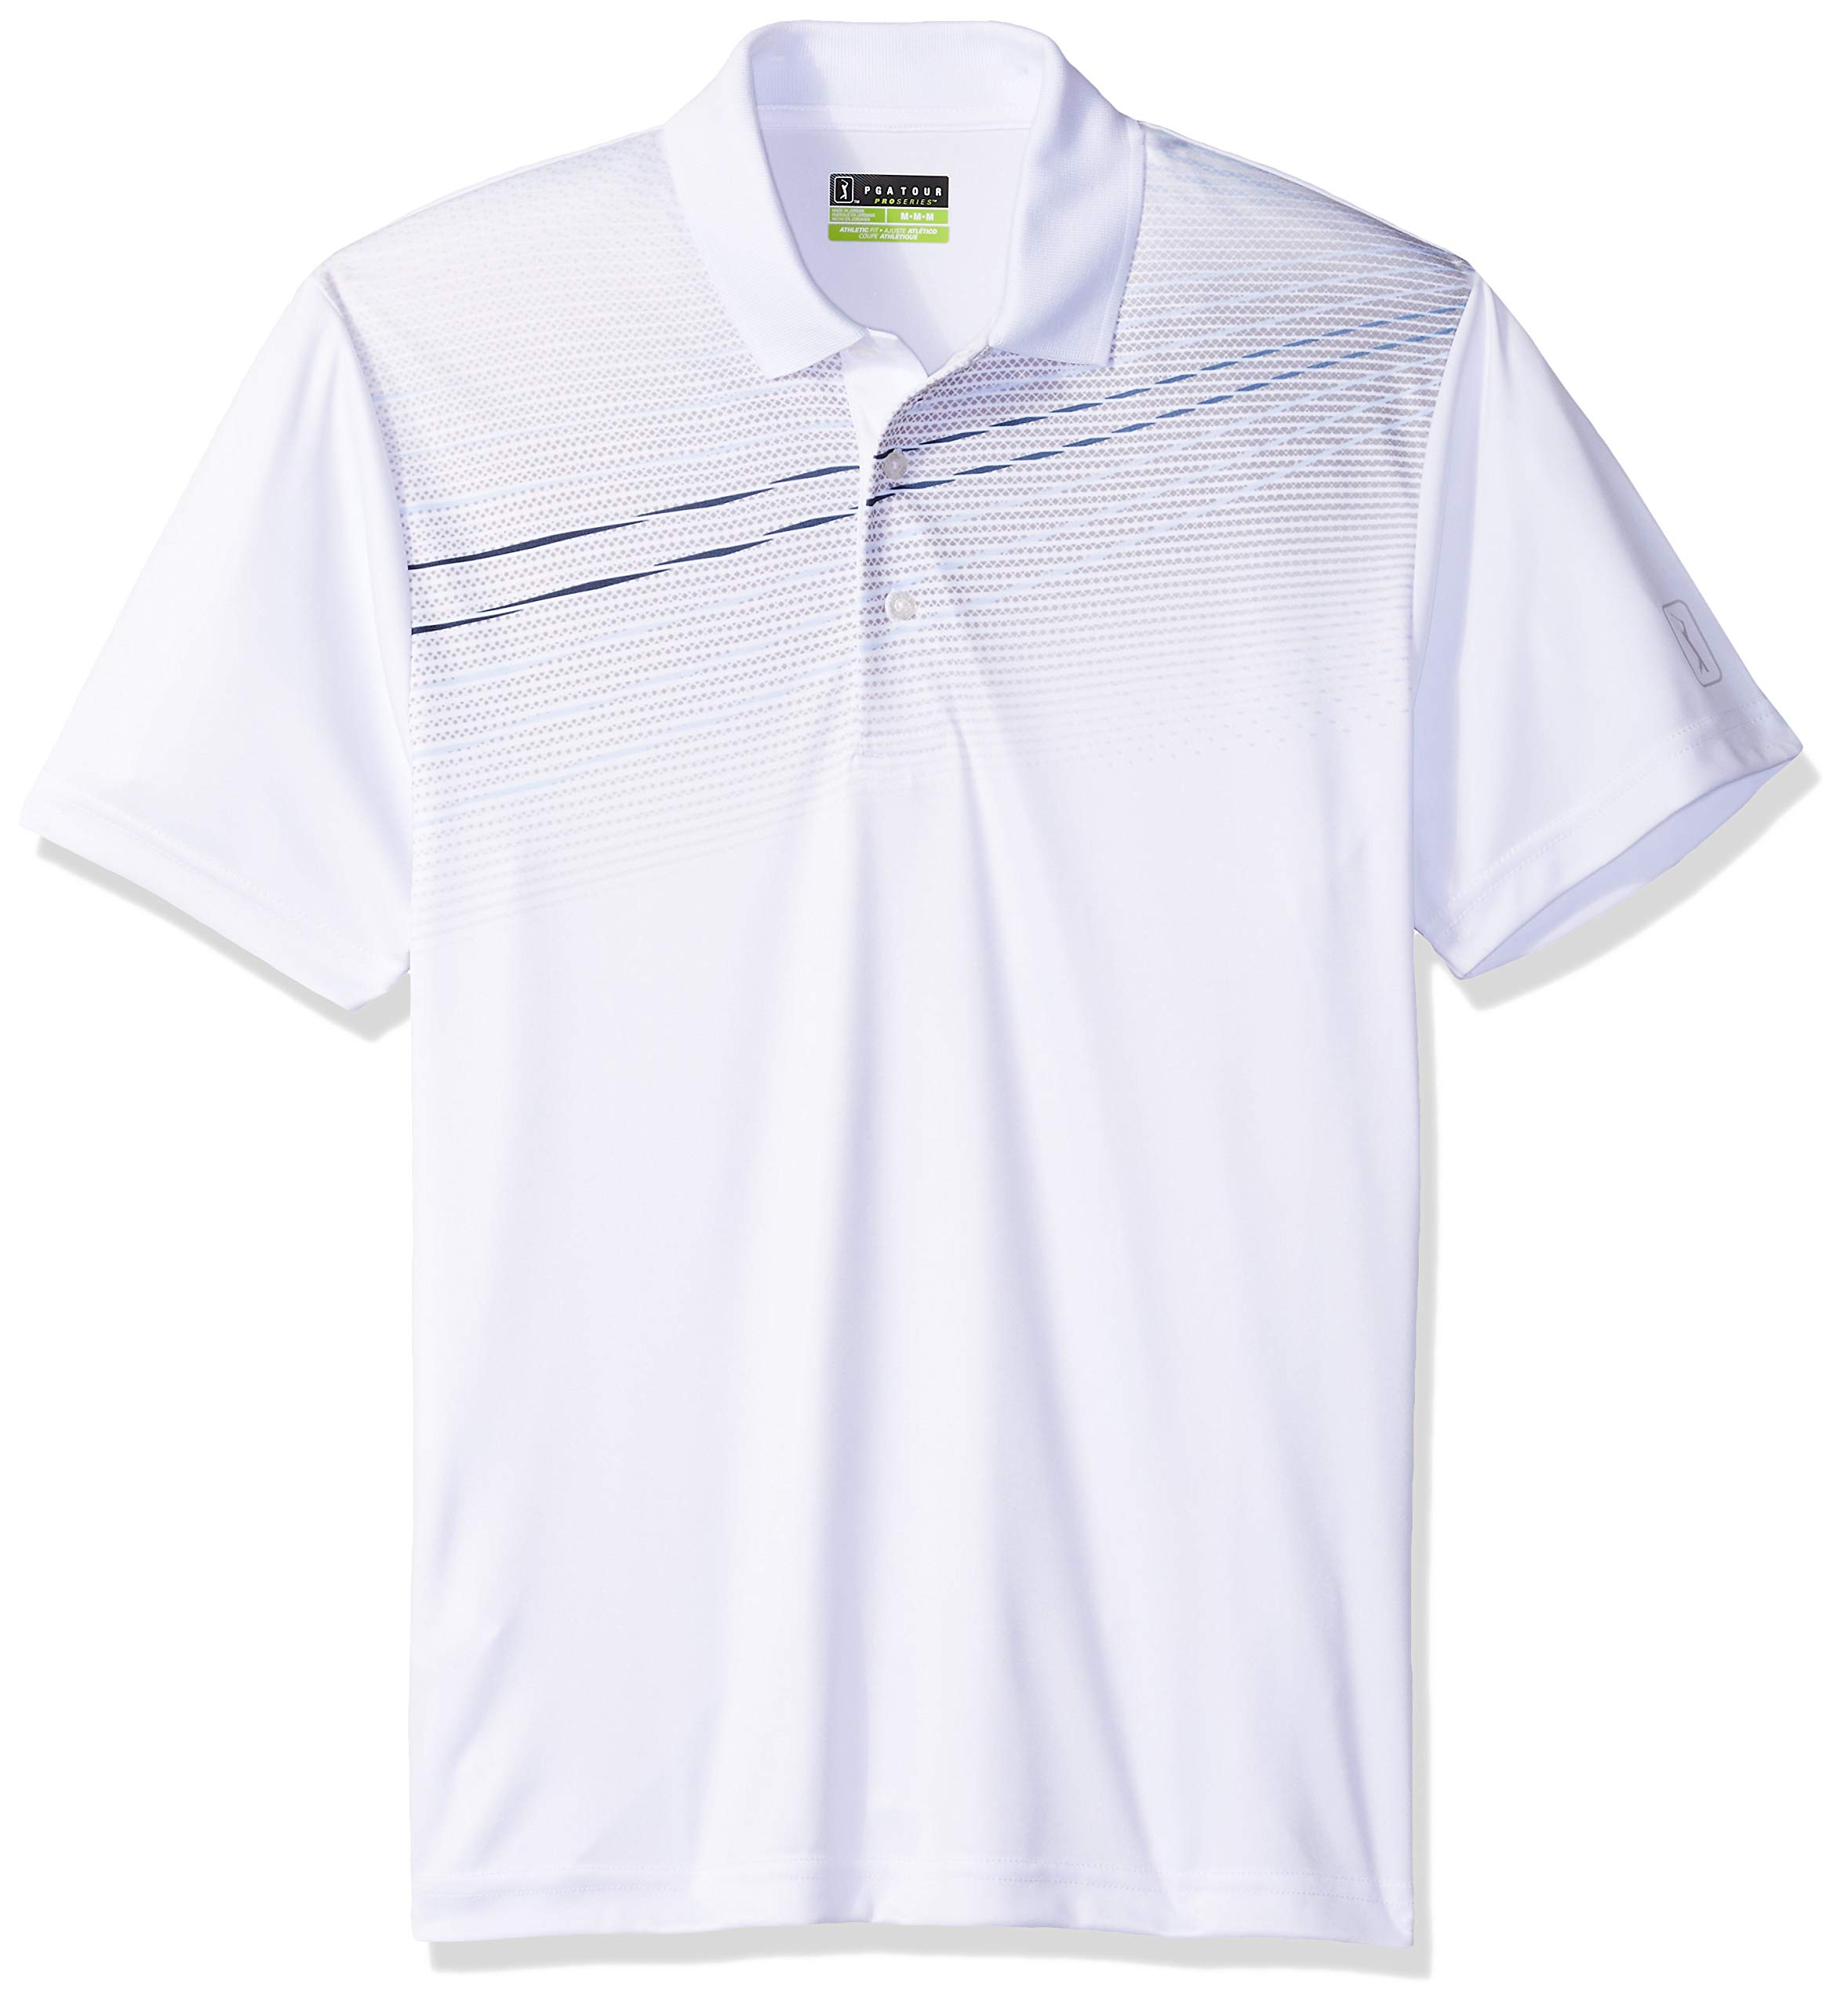 PGA TOUR Men's Short Sleeve Gradient Wave Mini Texture Print Polo Shirt, Bright White, Medium